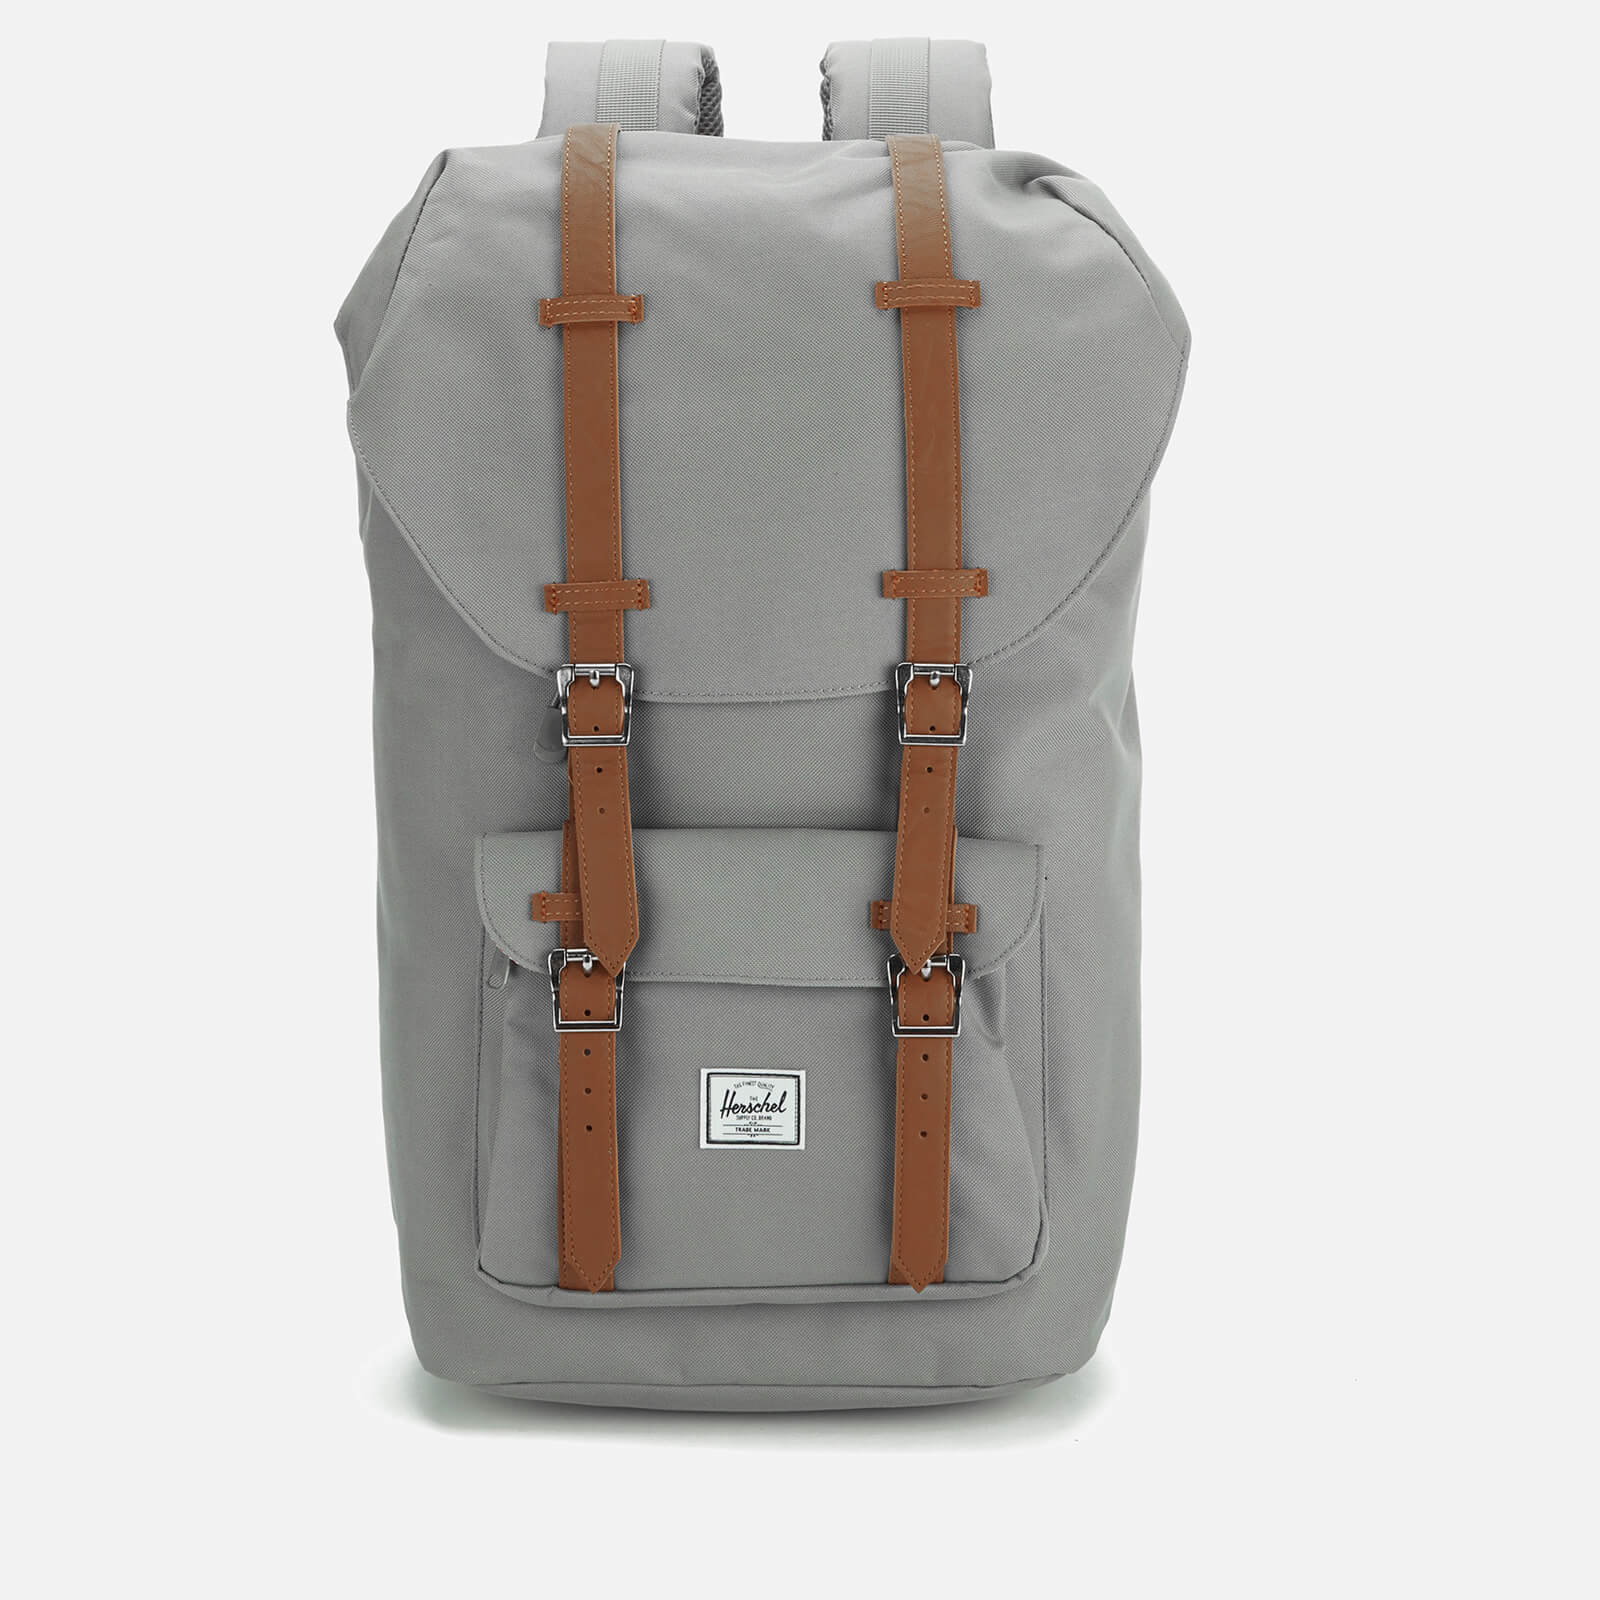 Herschel Supply Co Little America Backpack Grey Tan Synthetic Leather